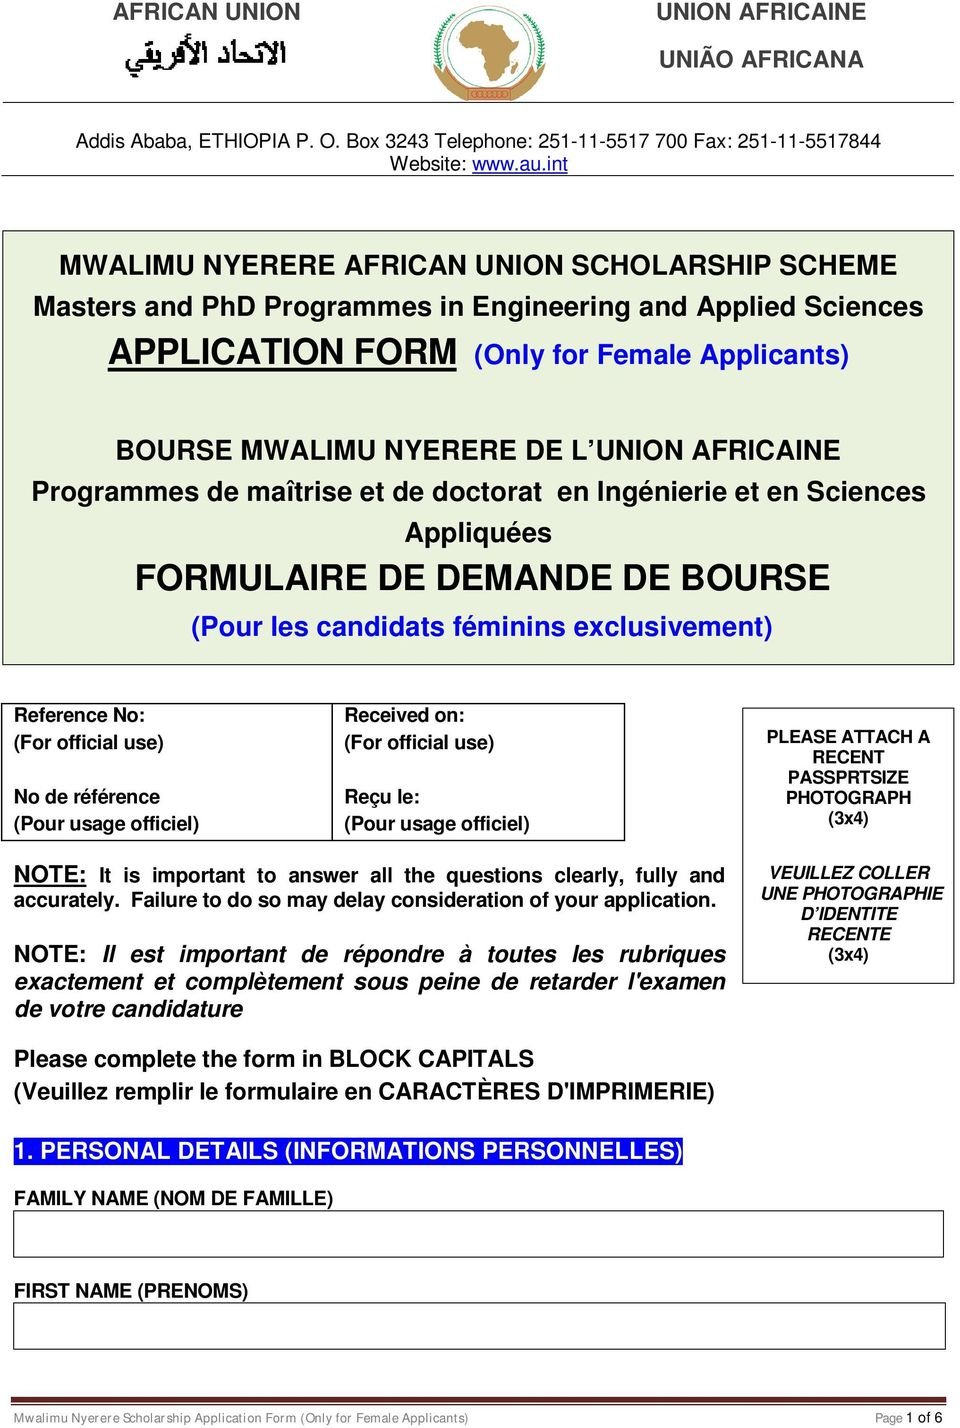 AFRICAINE Programmes de maîtrise et de doctorat en Ingénierie et en Sciences Appliquées FORMULAIRE DE DEMANDE DE BOURSE (Pour les candidats féminins exclusivement) Reference No: (For official use) No